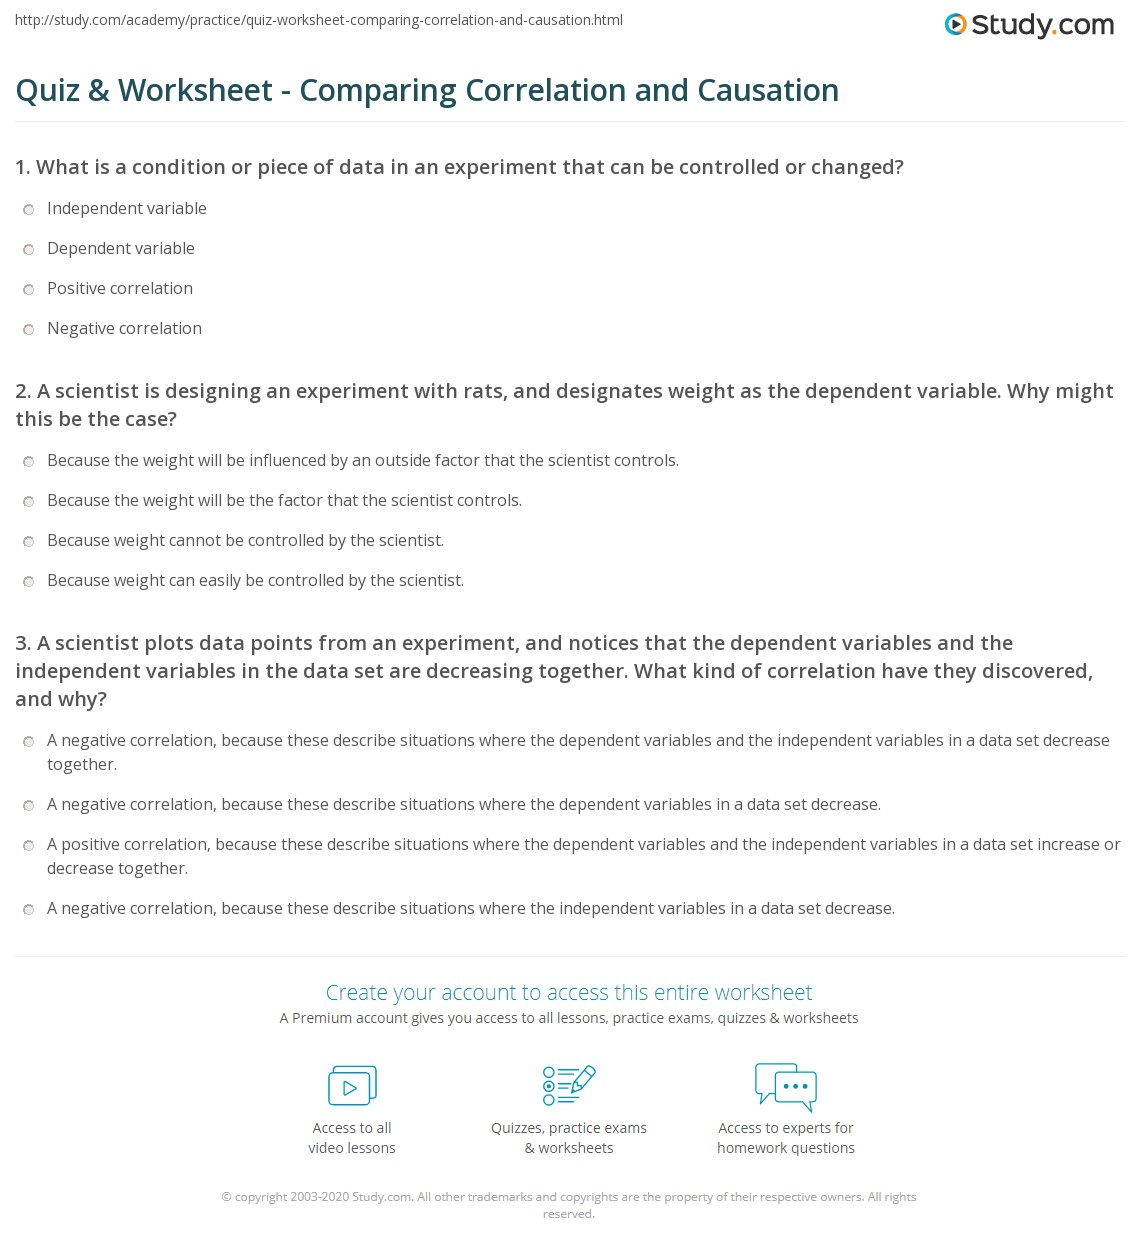 Aldiablosus  Unique Quiz Amp Worksheet  Comparing Correlation And Causation  Studycom With Licious Print Correlation Vs Causation Differences Amp Definition Worksheet With Delectable Equivalent Fraction Practice Worksheets Also Shapes For Preschoolers Worksheets In Addition Capitalization Worksheets Grade  And Text Feature Worksheets Rd Grade As Well As Alphabets Worksheet Additionally Bar Graph Worksheets Grade  From Studycom With Aldiablosus  Licious Quiz Amp Worksheet  Comparing Correlation And Causation  Studycom With Delectable Print Correlation Vs Causation Differences Amp Definition Worksheet And Unique Equivalent Fraction Practice Worksheets Also Shapes For Preschoolers Worksheets In Addition Capitalization Worksheets Grade  From Studycom